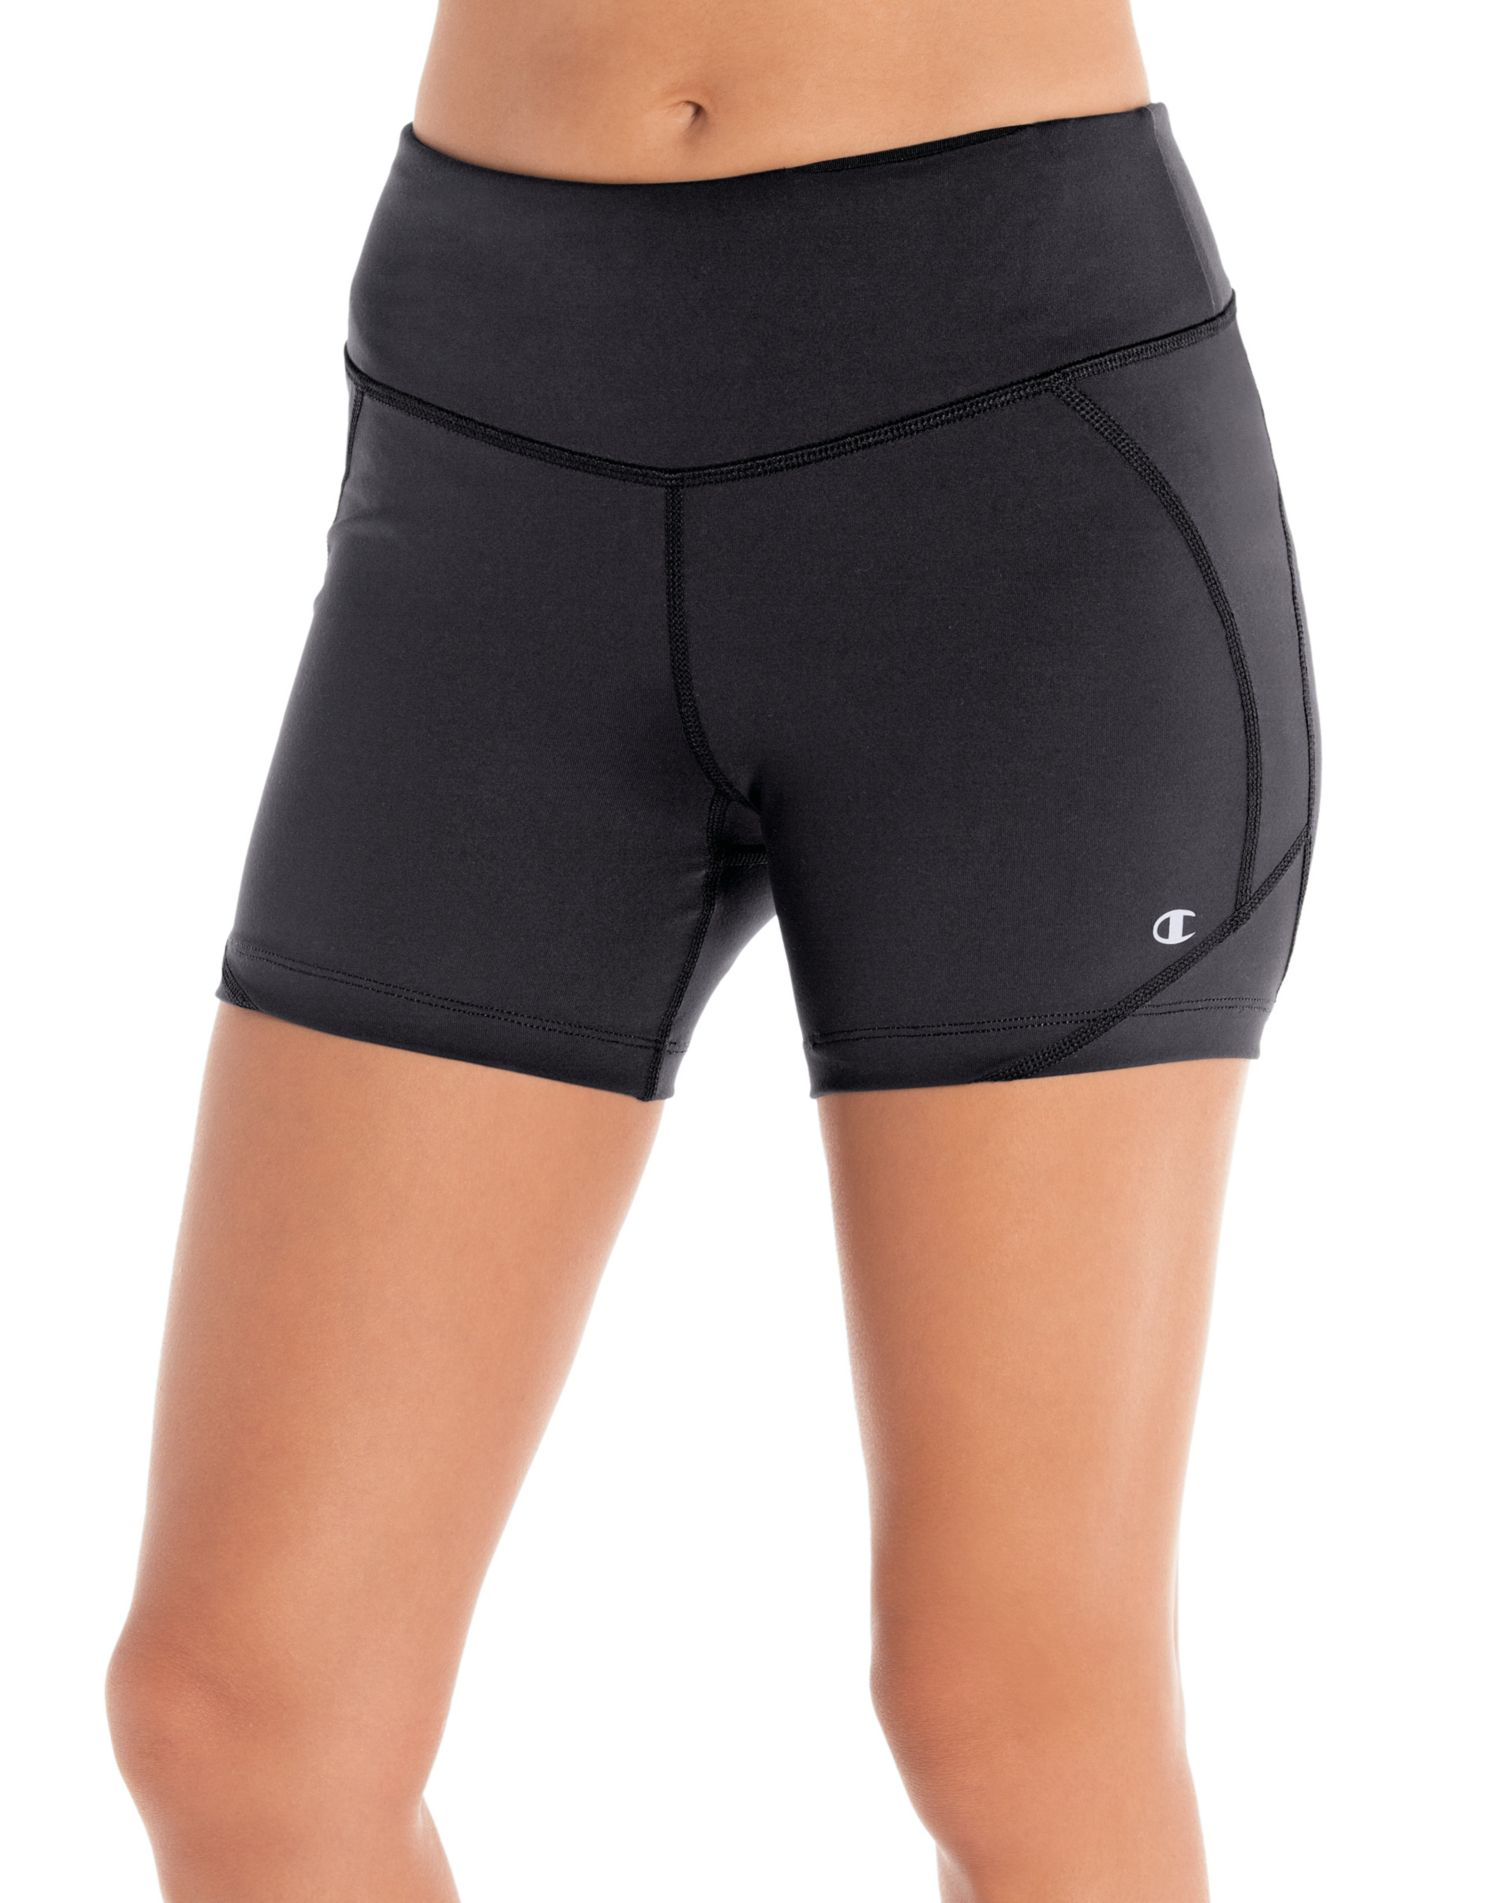 Buy Women's Shorts Online | Cheap Women's Shorts On Sale